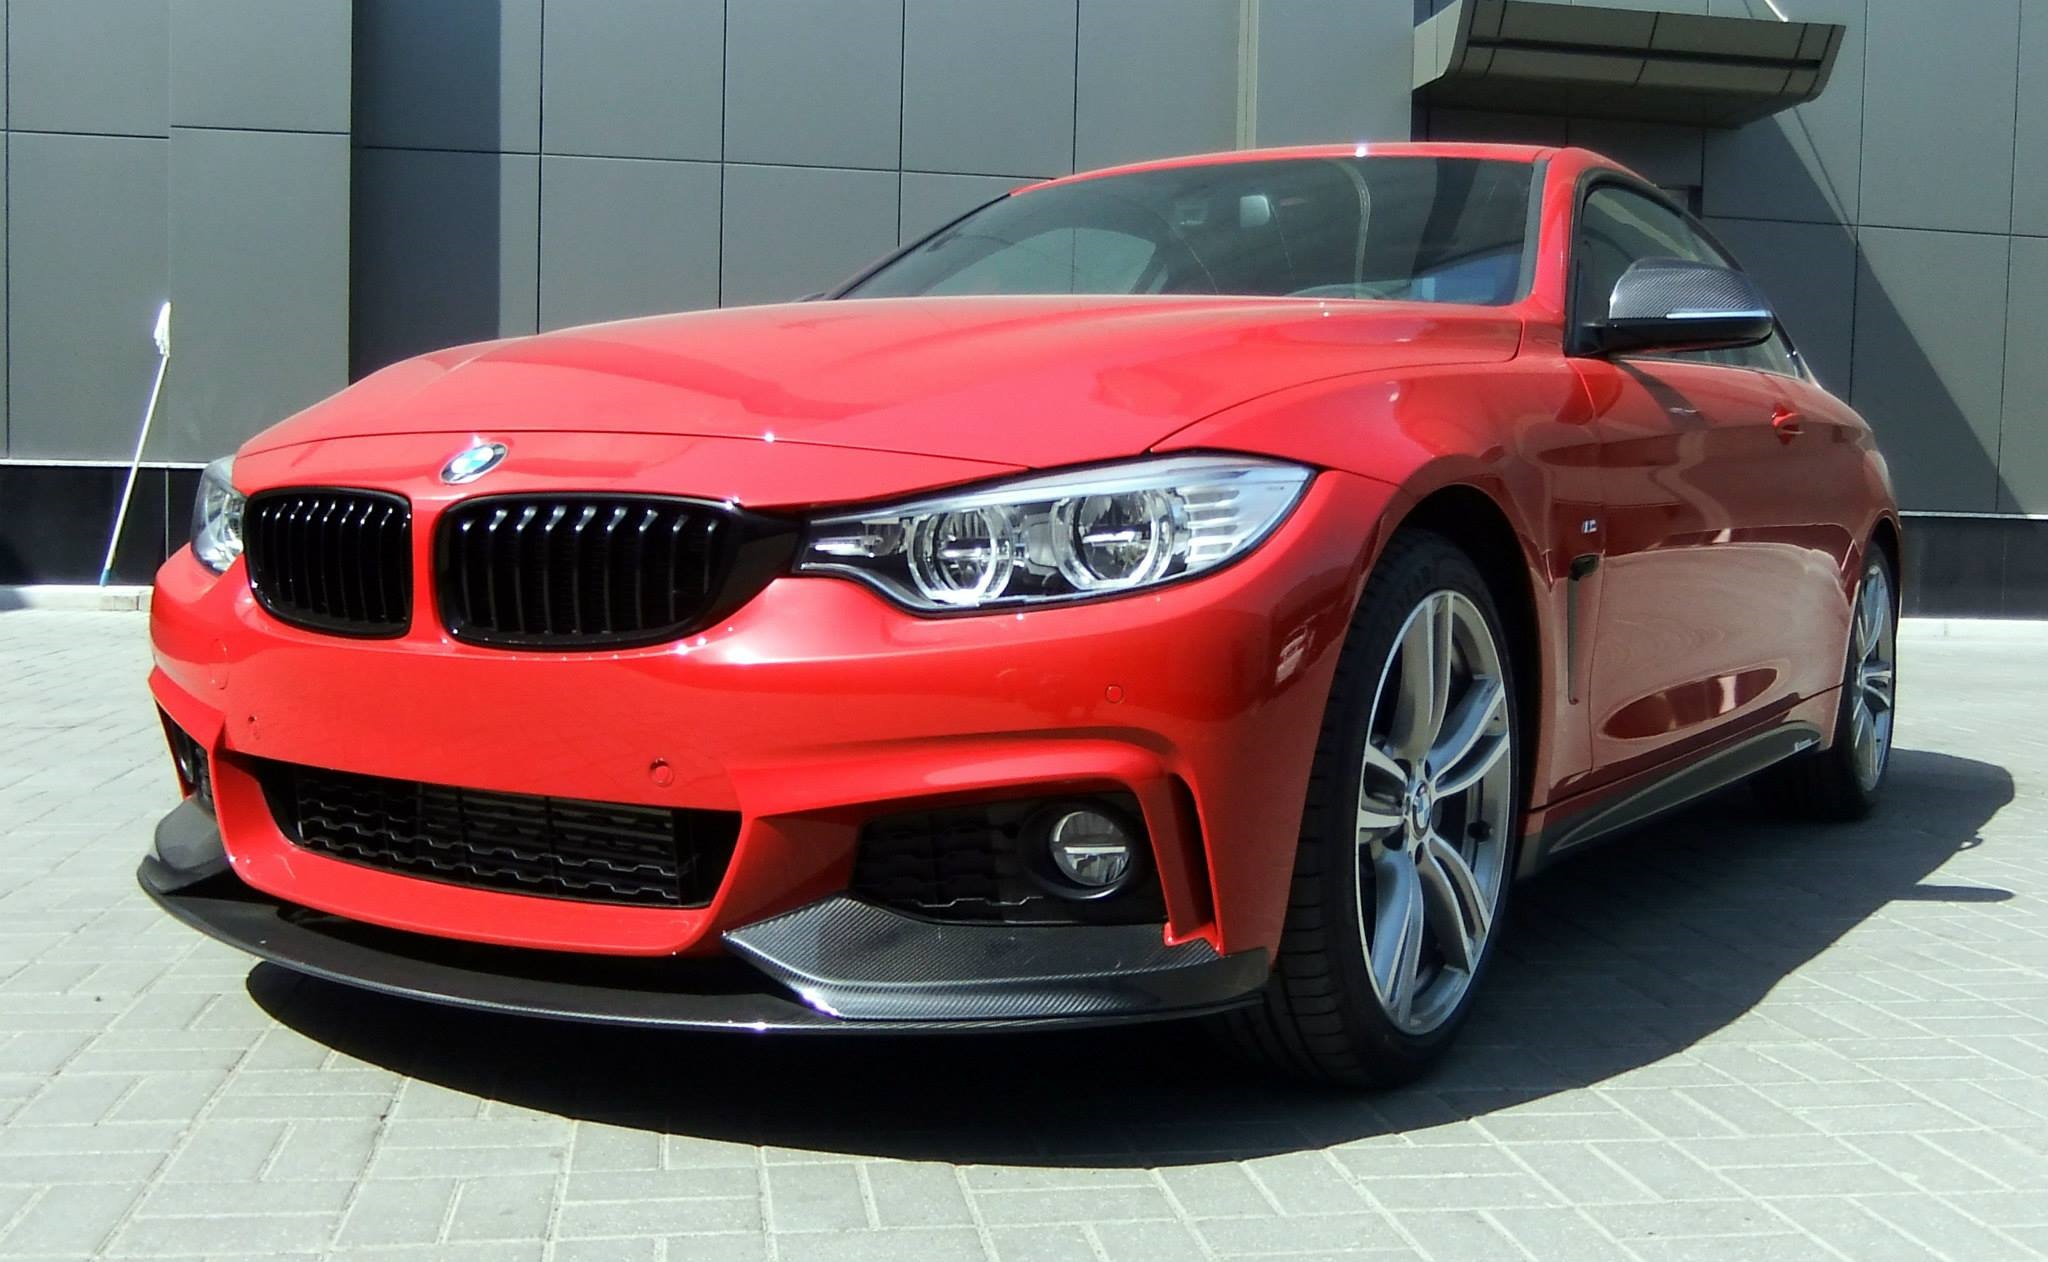 BMW 4er F32 Tuning M Performance Zubehoer 435i Coupe rot 02